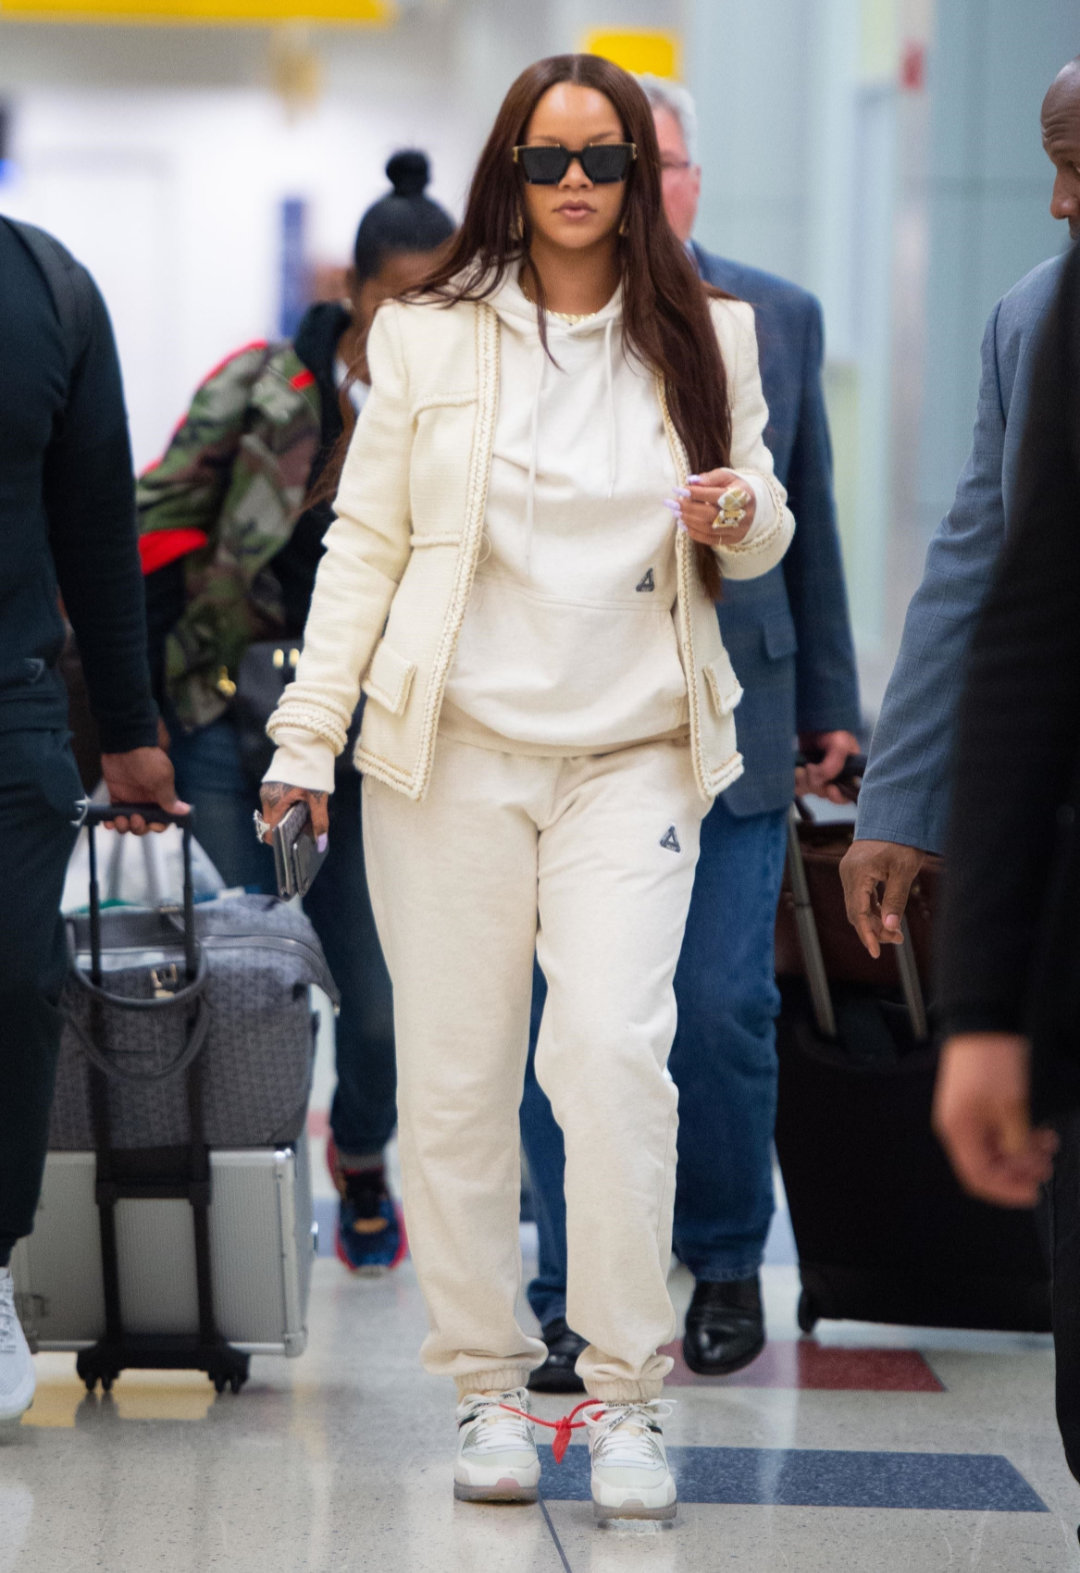 Rihanna Wears Chanel Jacket During Flight to NYC Haus of